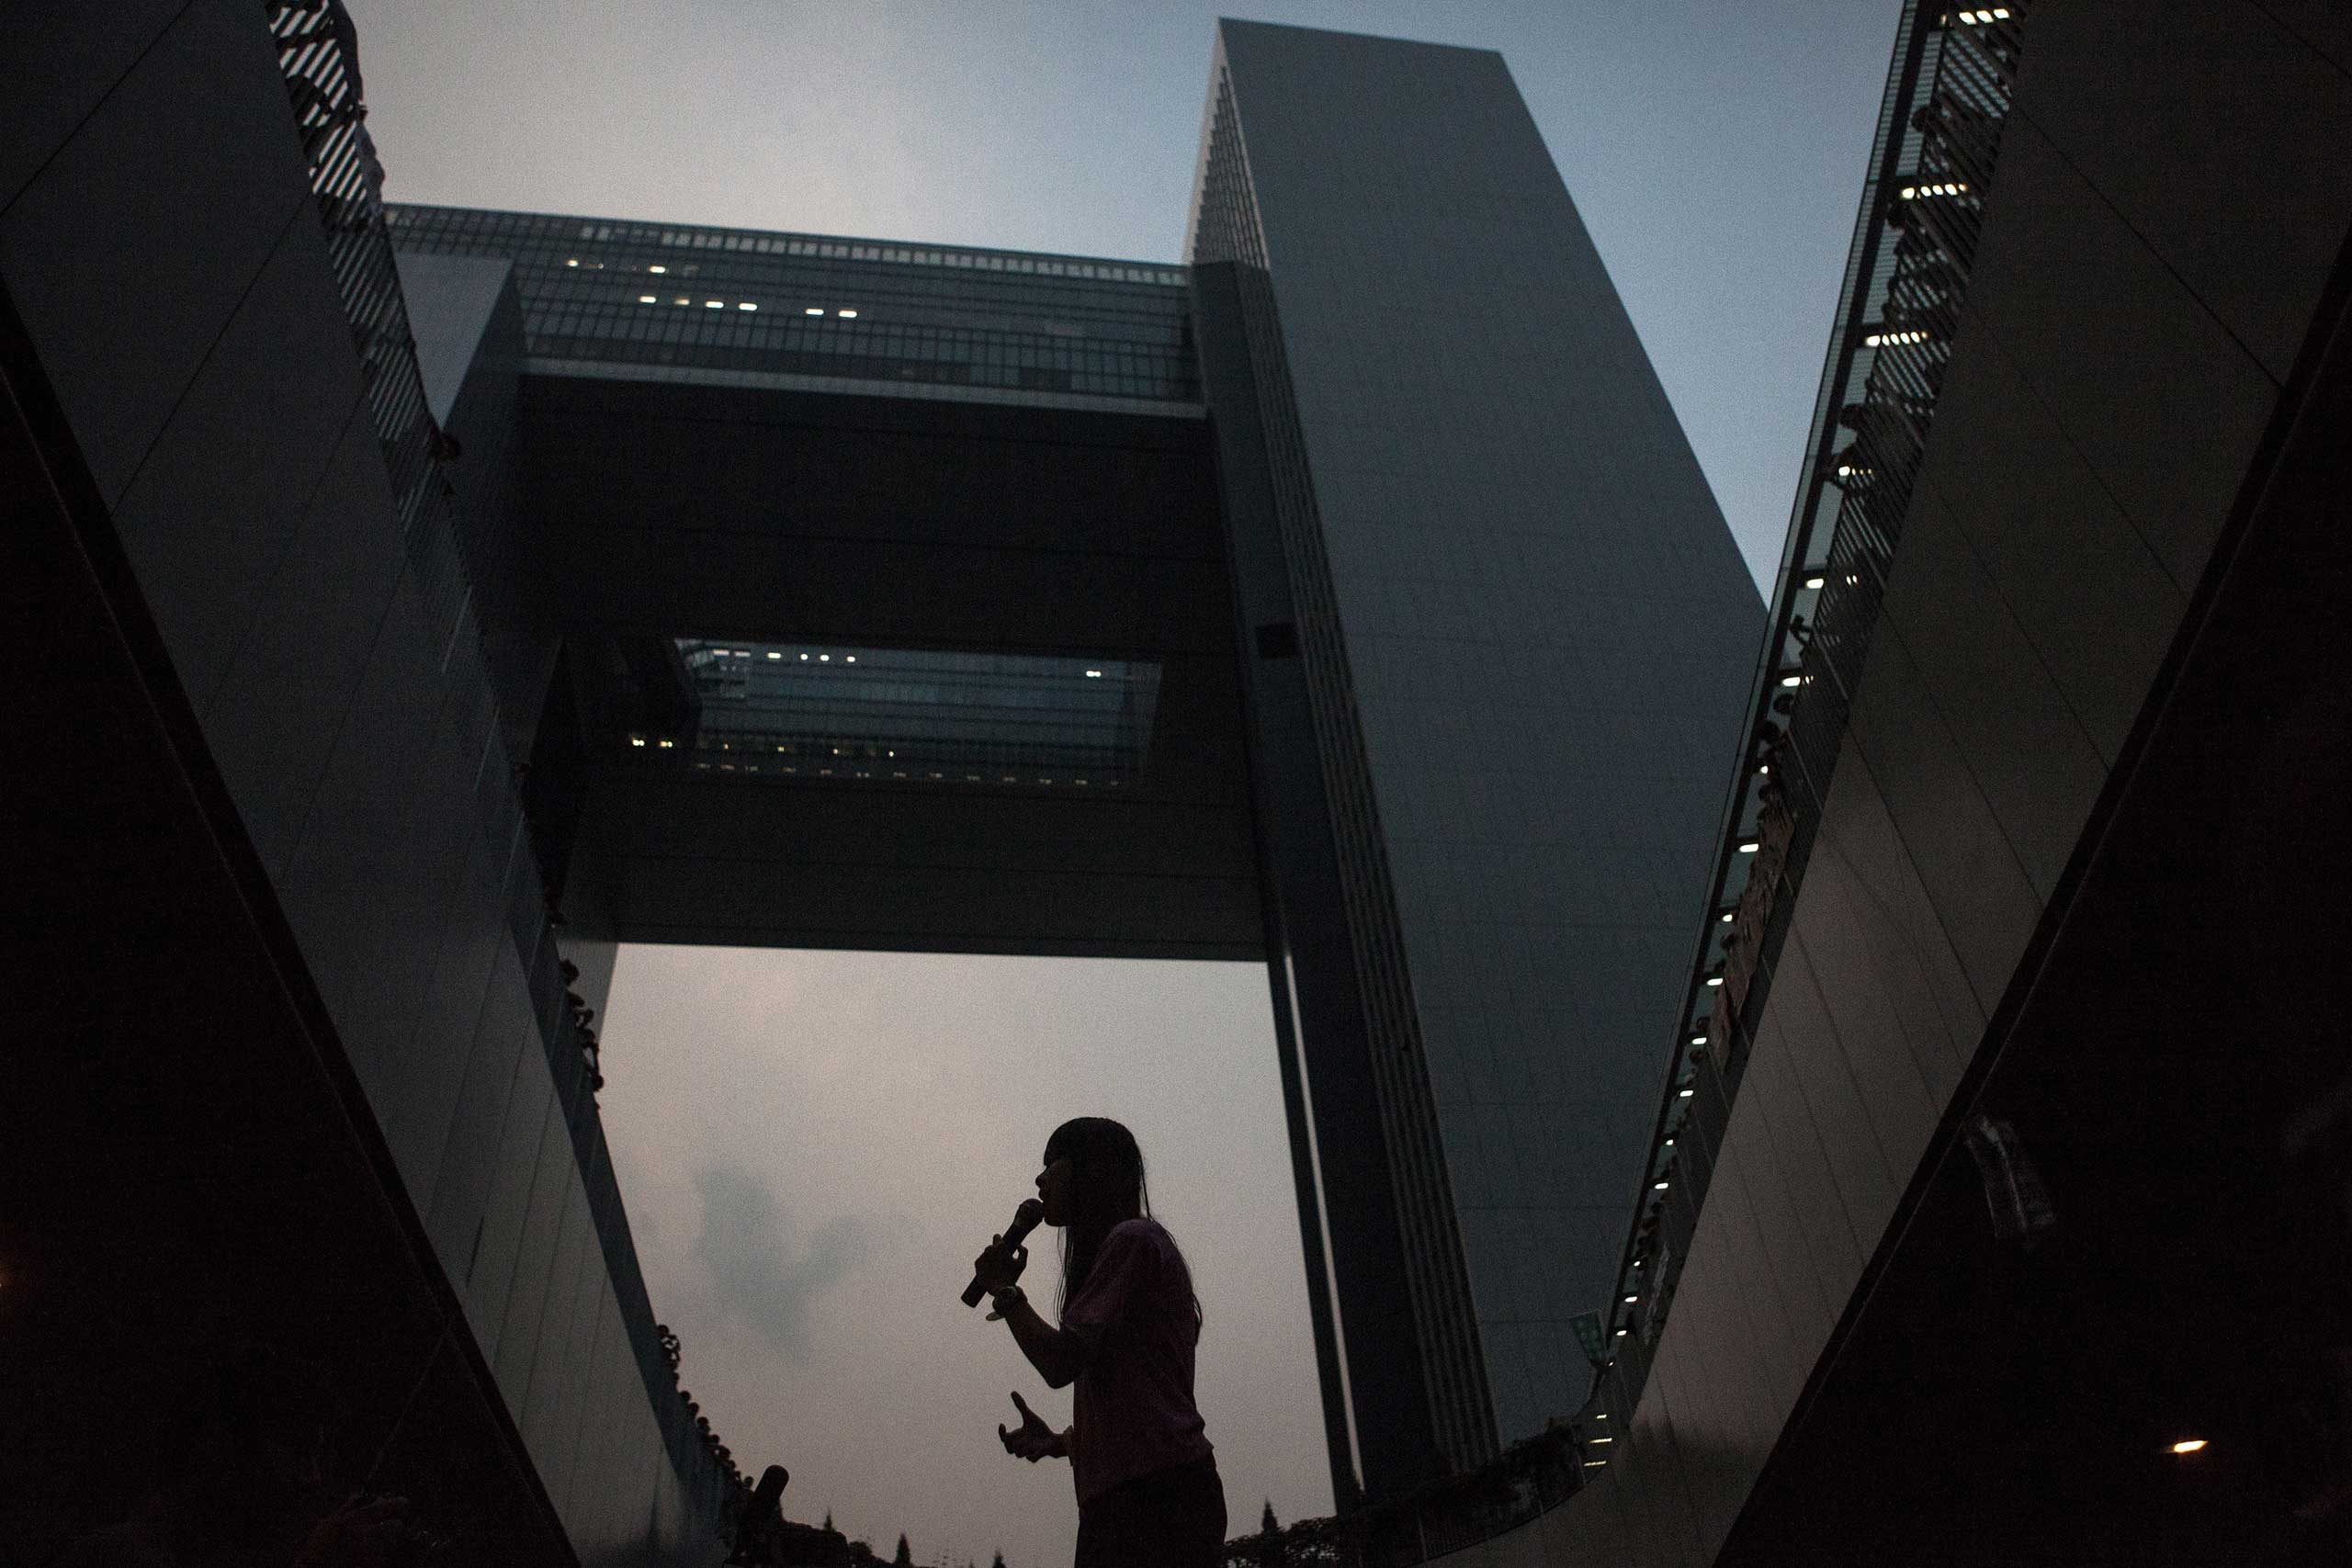 A pro-democracy protestor speaks to the crowd in front of the government offices in Hong Kong on Sept. 30, 2014.